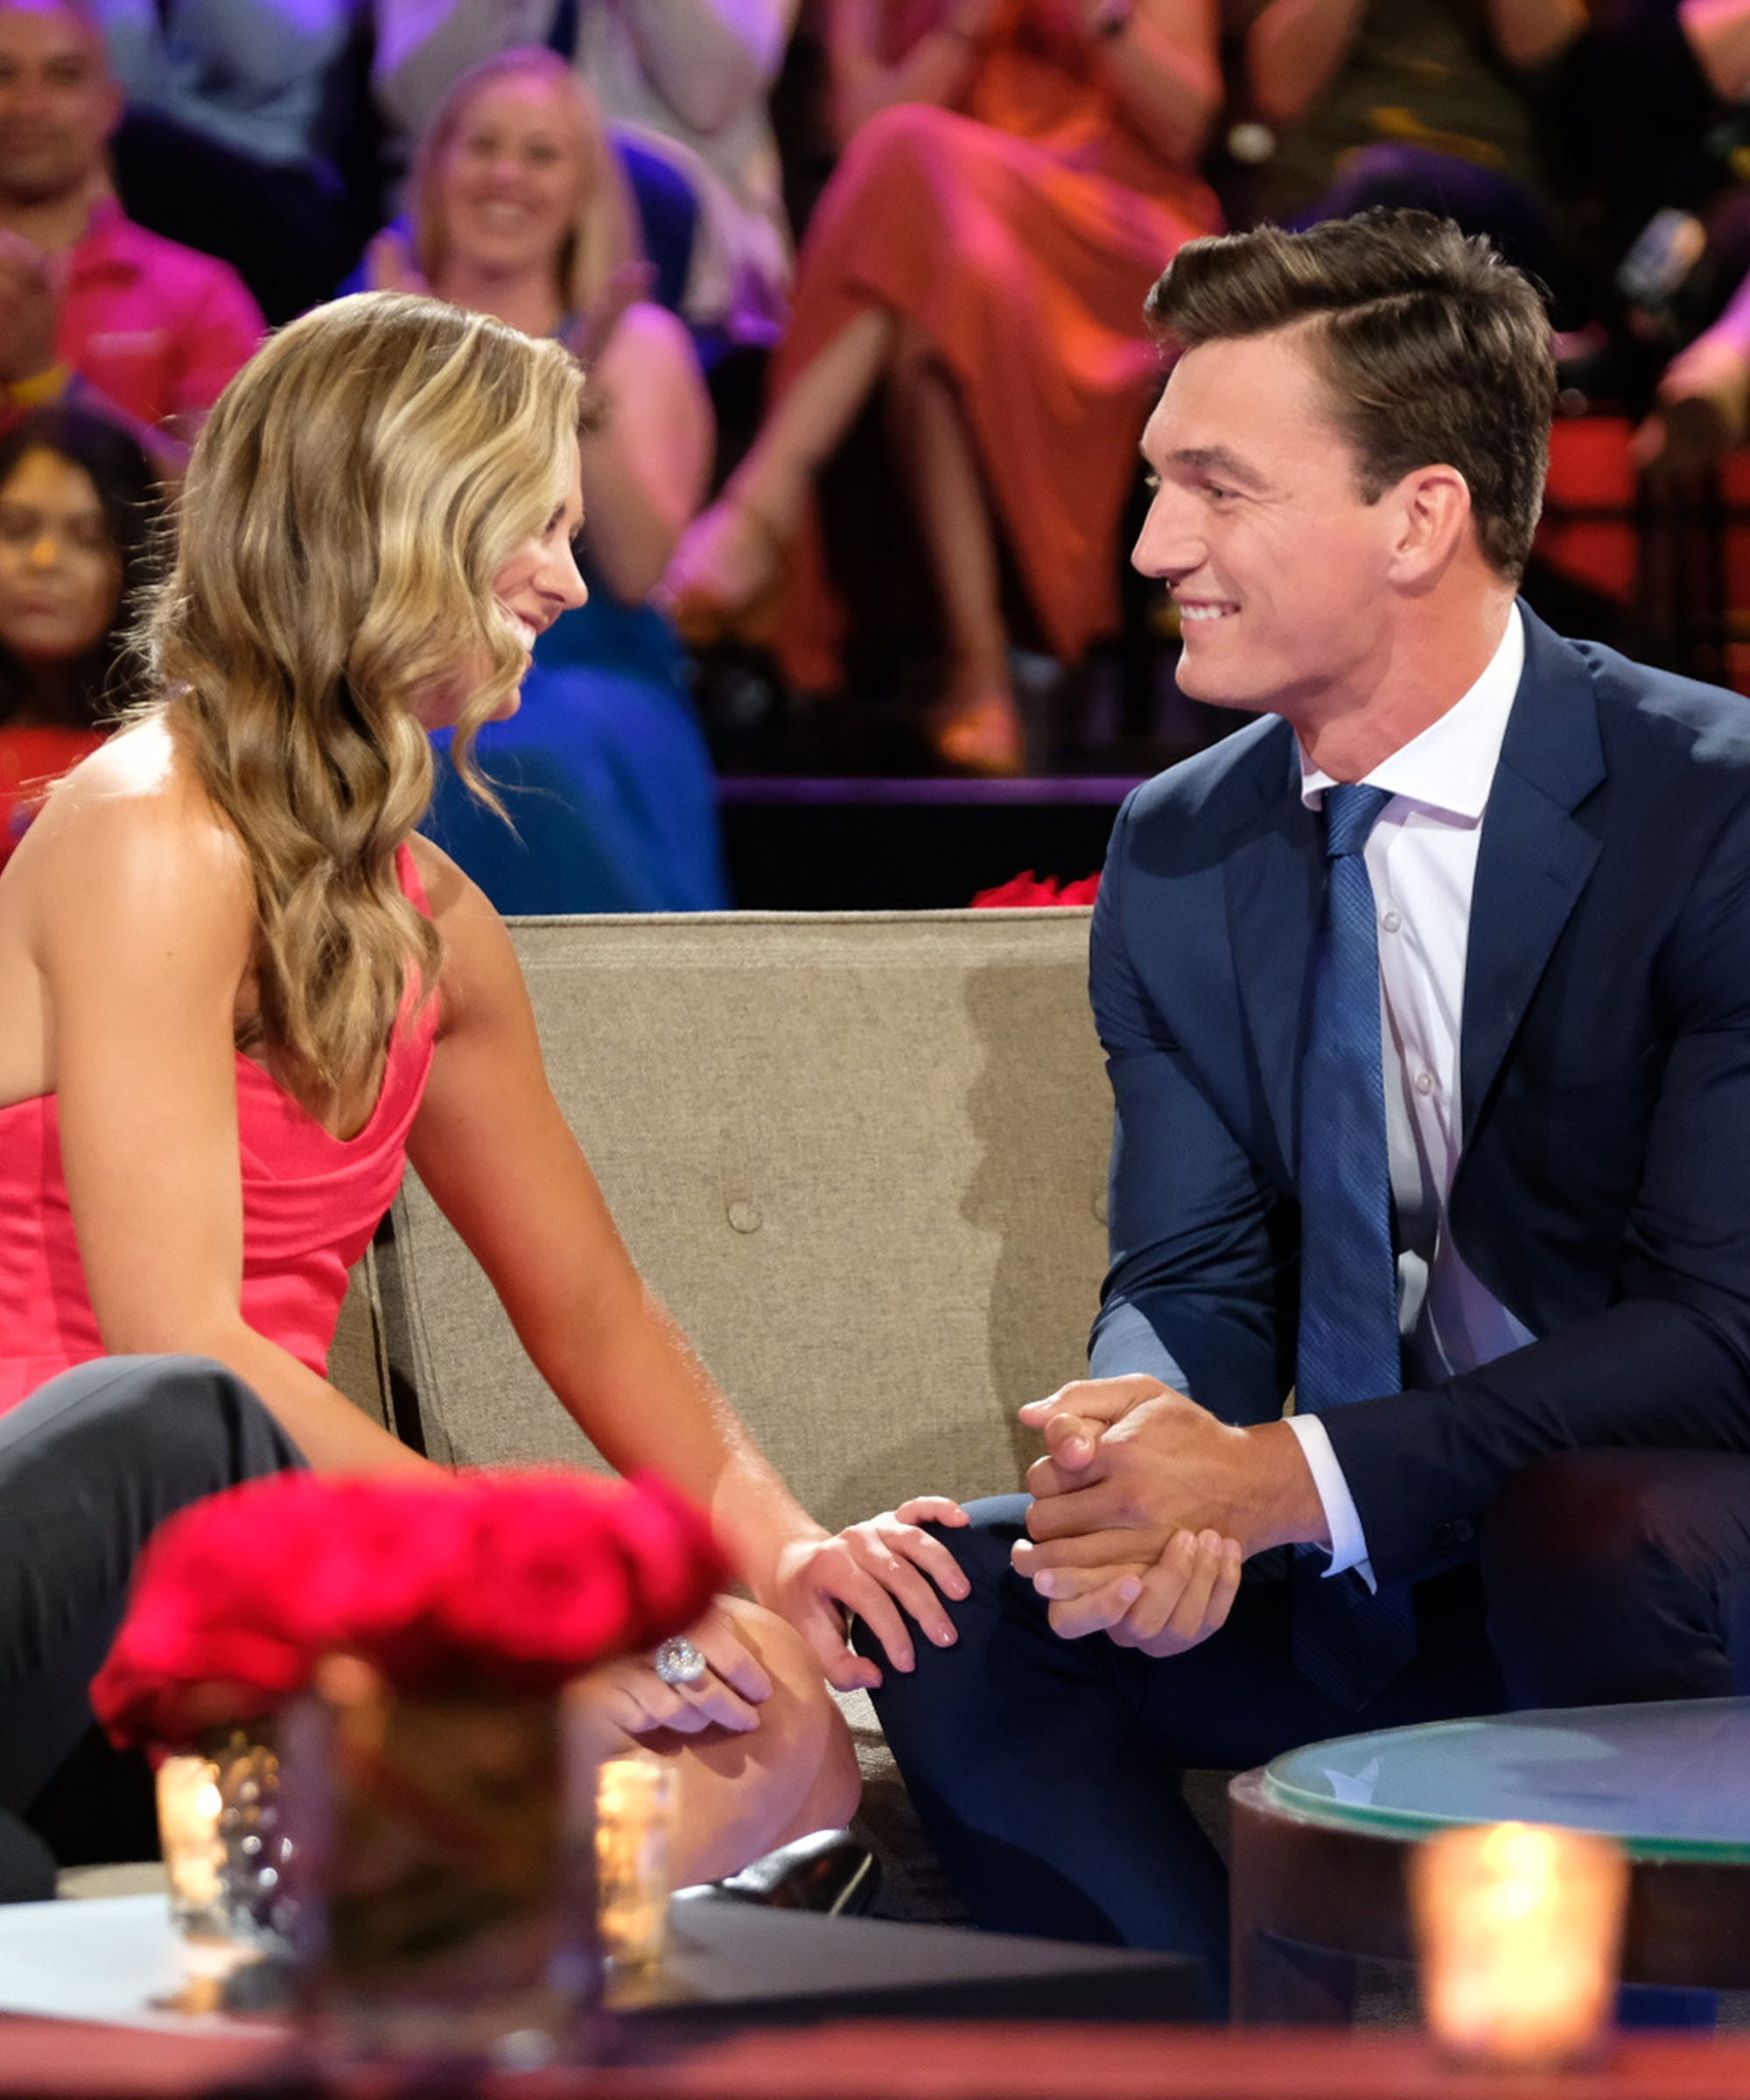 Is The Bachelor A-List Now?